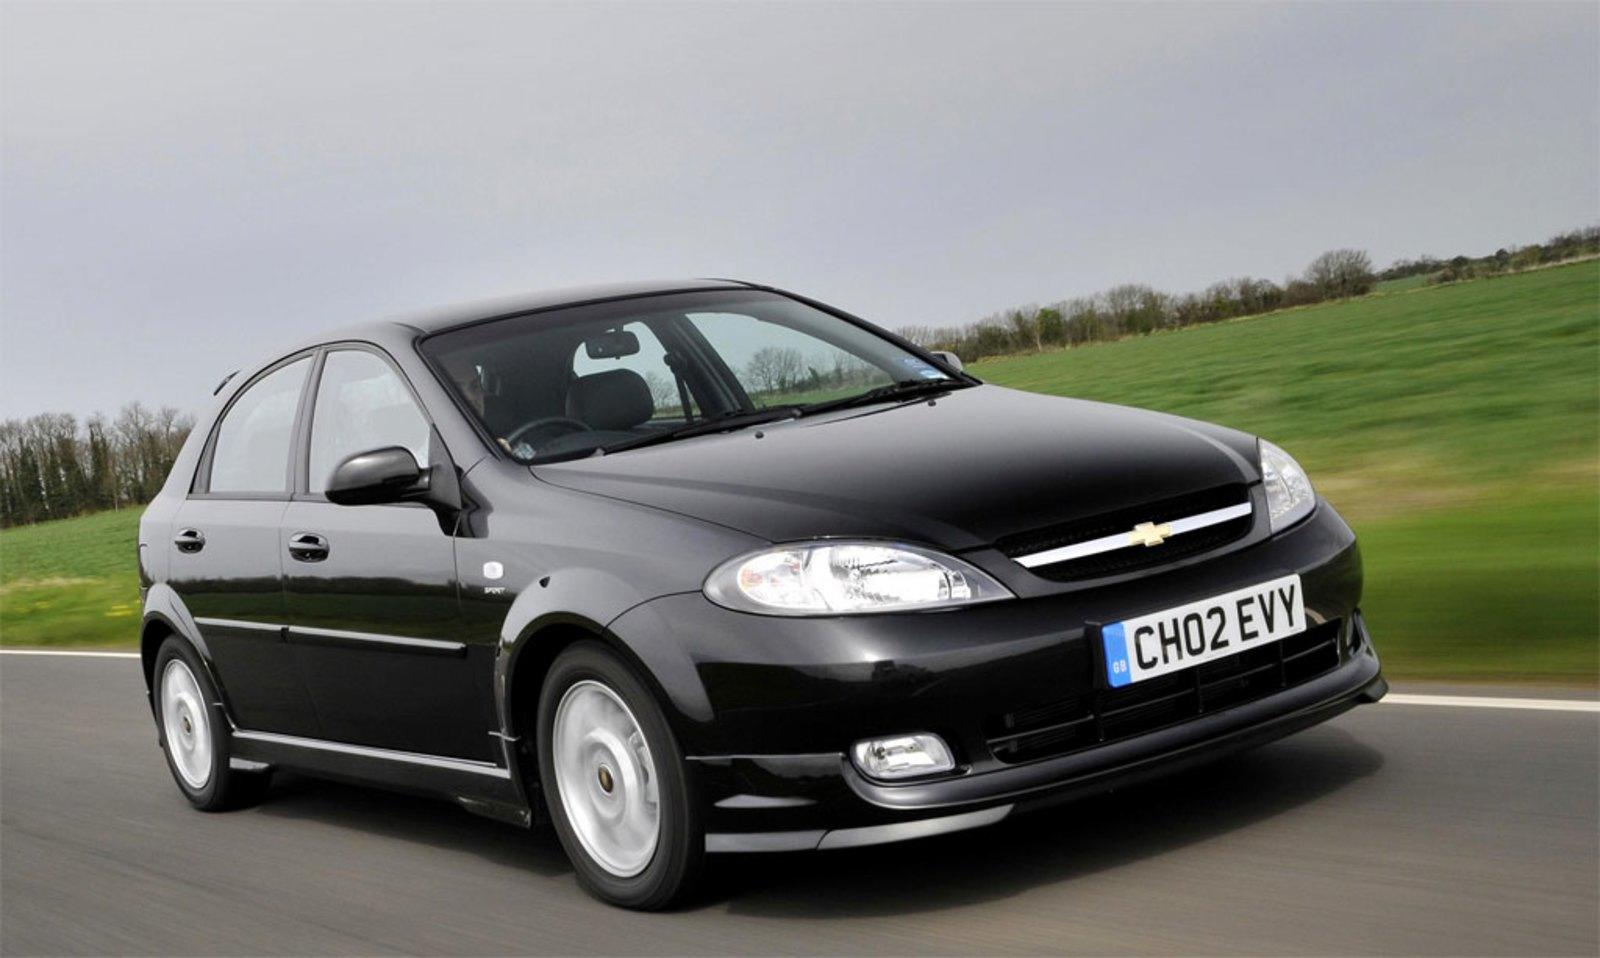 hight resolution of 2008 chevrolet lacetti sport